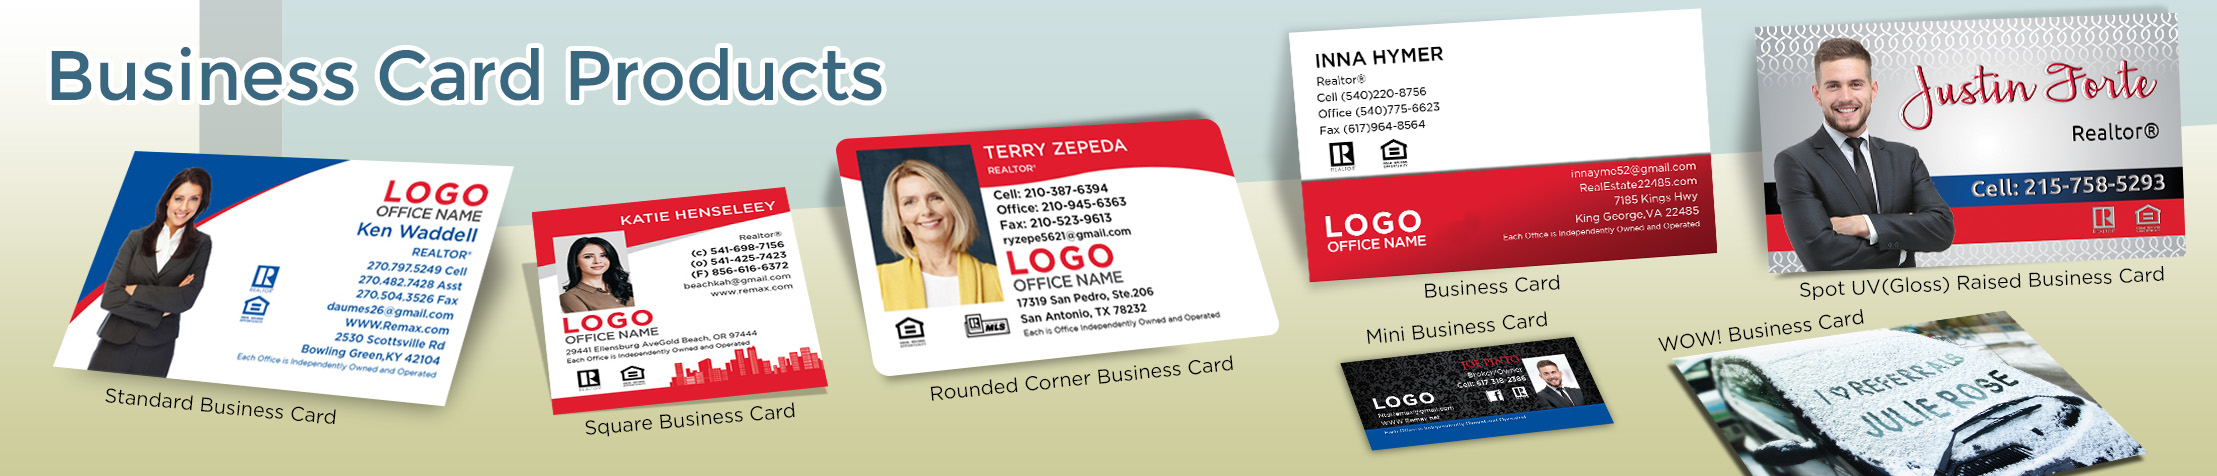 RE/MAX Real Estate Business Card Products - RE/MAX  - Unique, Custom Business Cards Printed on Quality Stock with Creative Designs for Realtors | BestPrintBuy.com